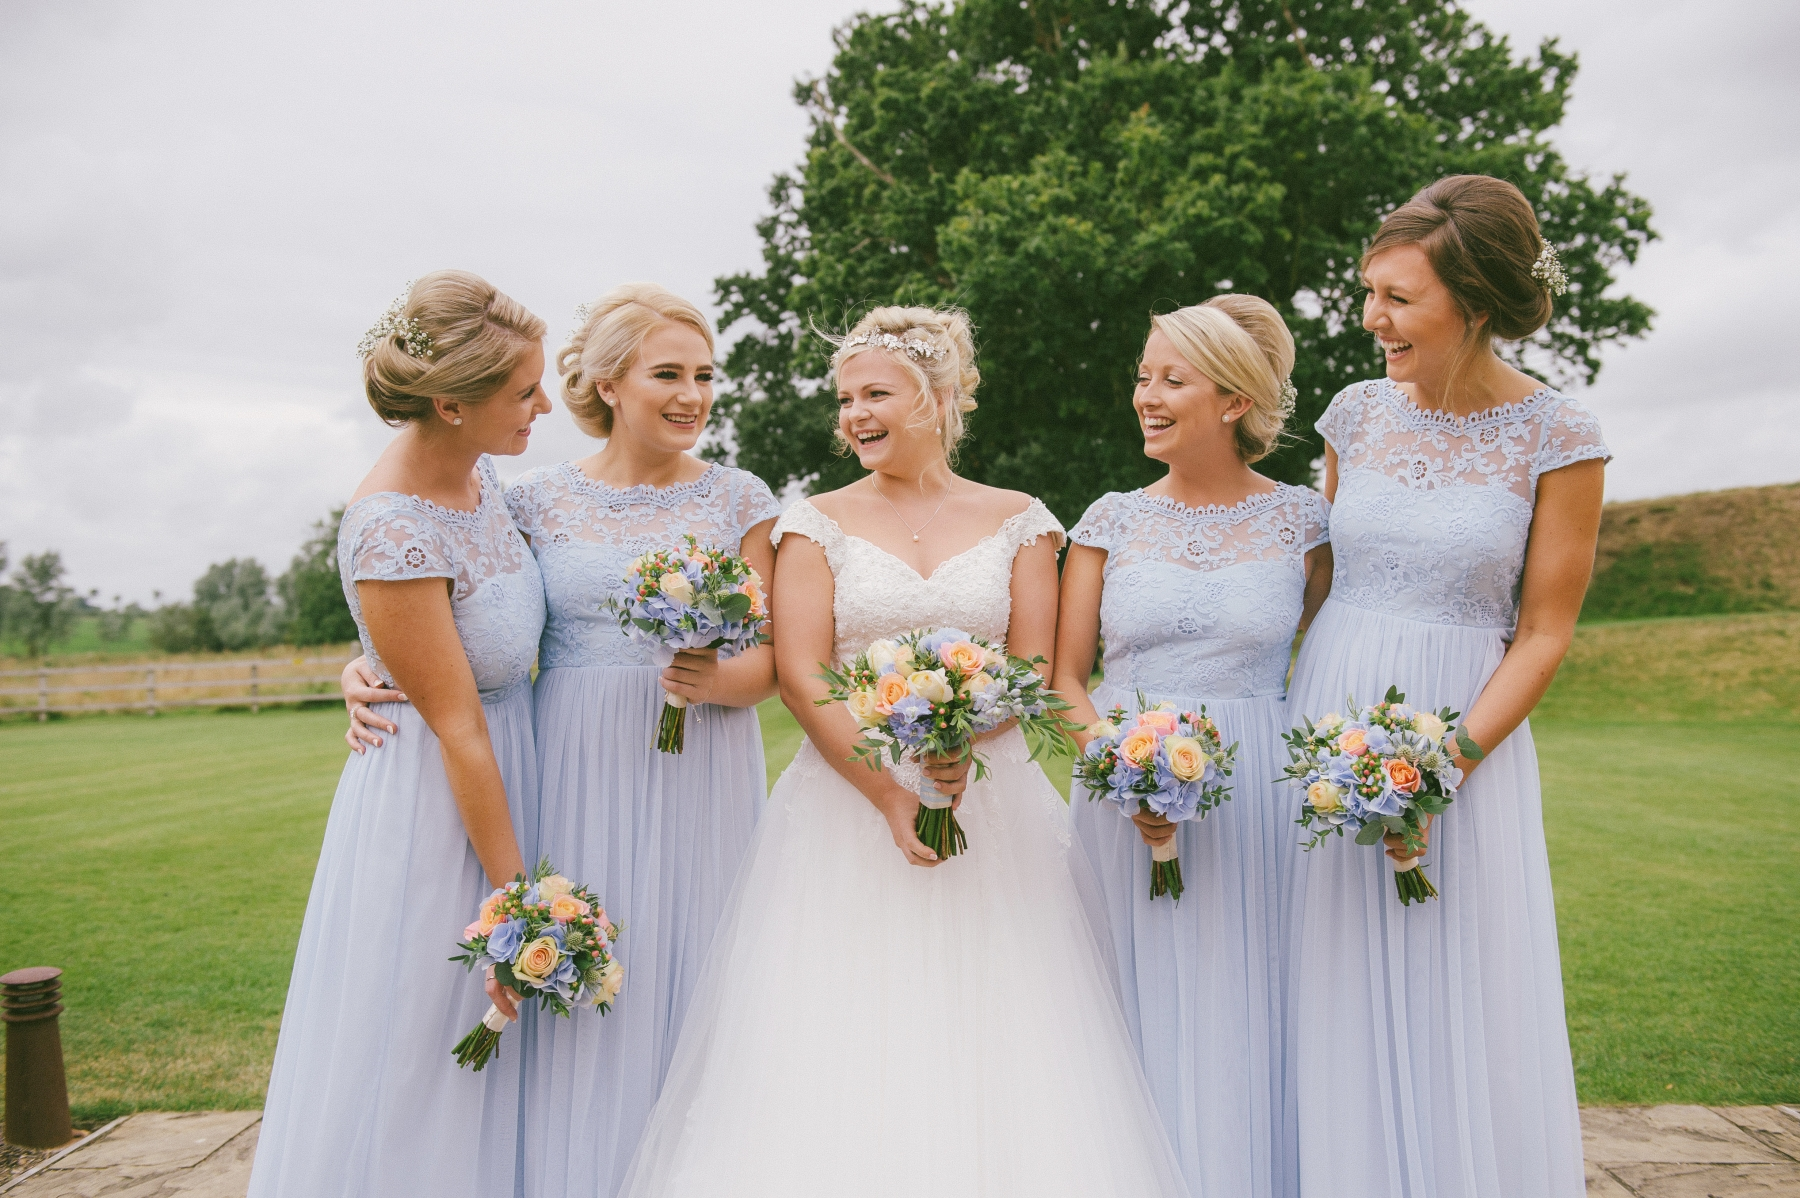 Claire and Stephen September 2016 - Bride and Bridesmaids